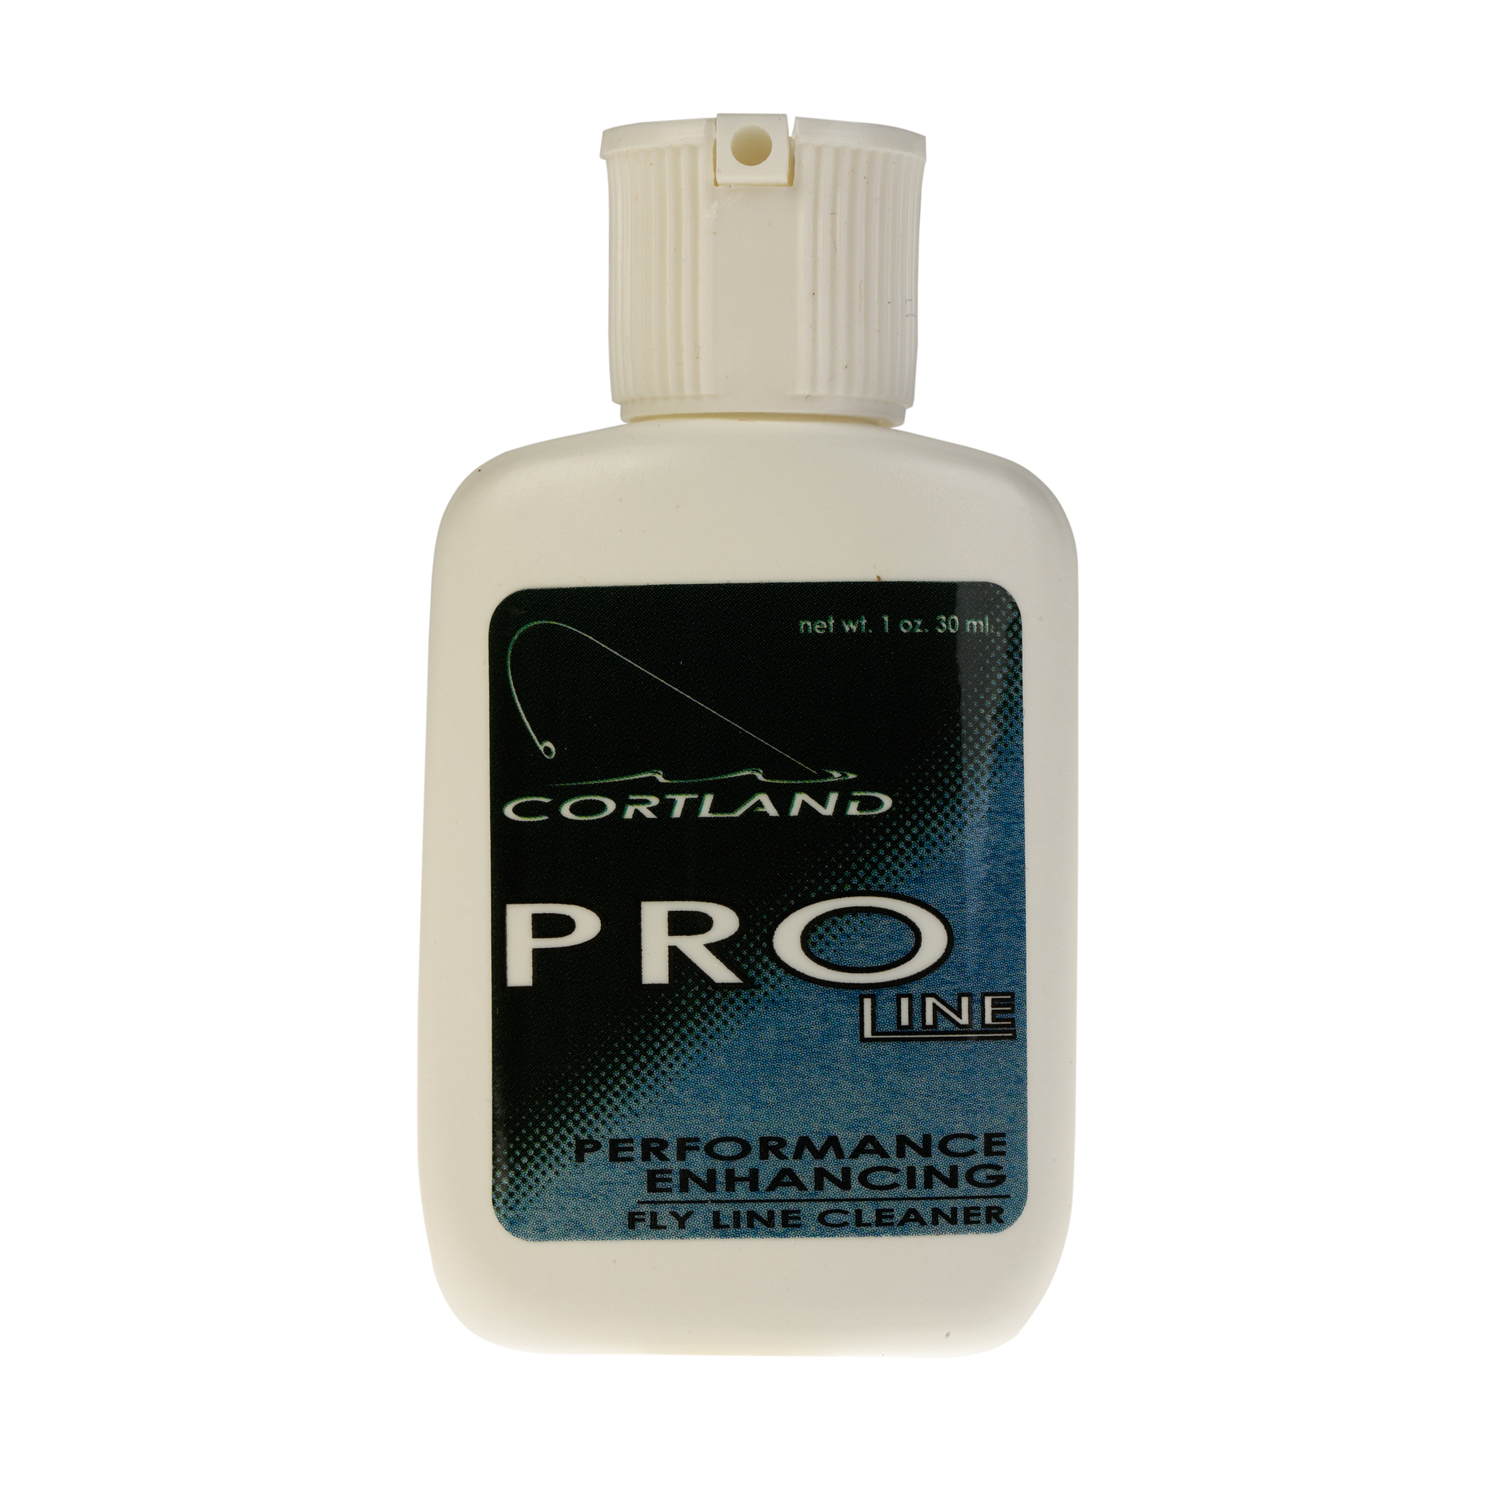 Cortland Pro Line Cleaner